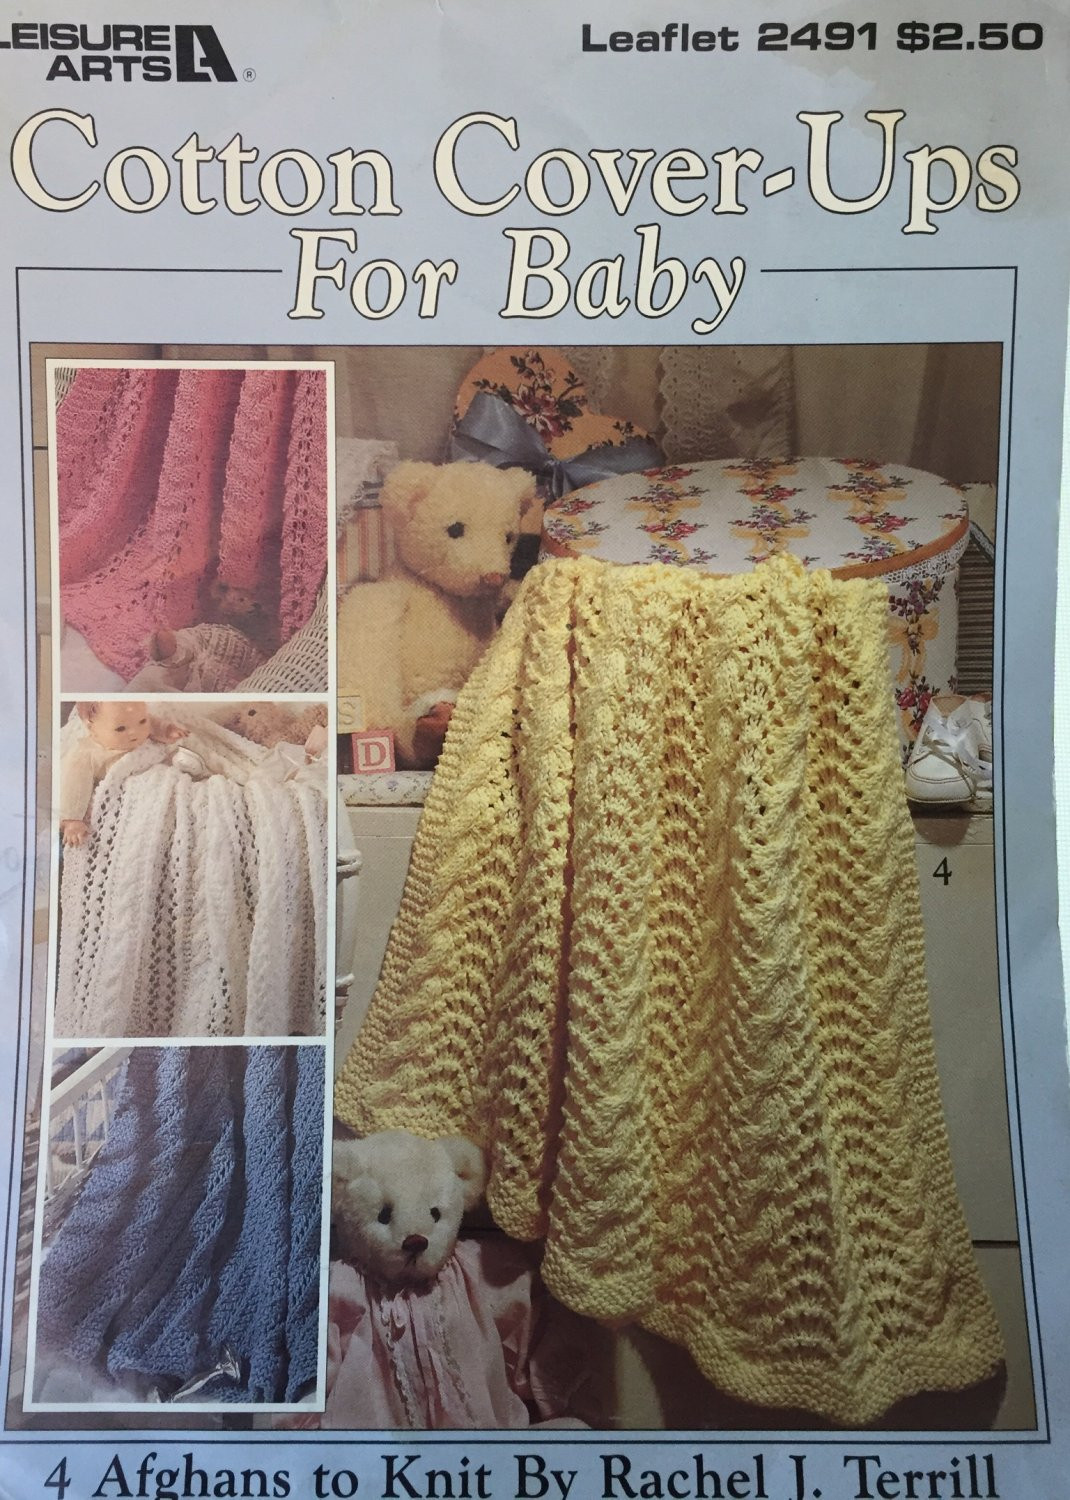 Cotton Cover-ups for Baby Afghan Knitting Pattern Cotton Yarn Leisure Arts 2491